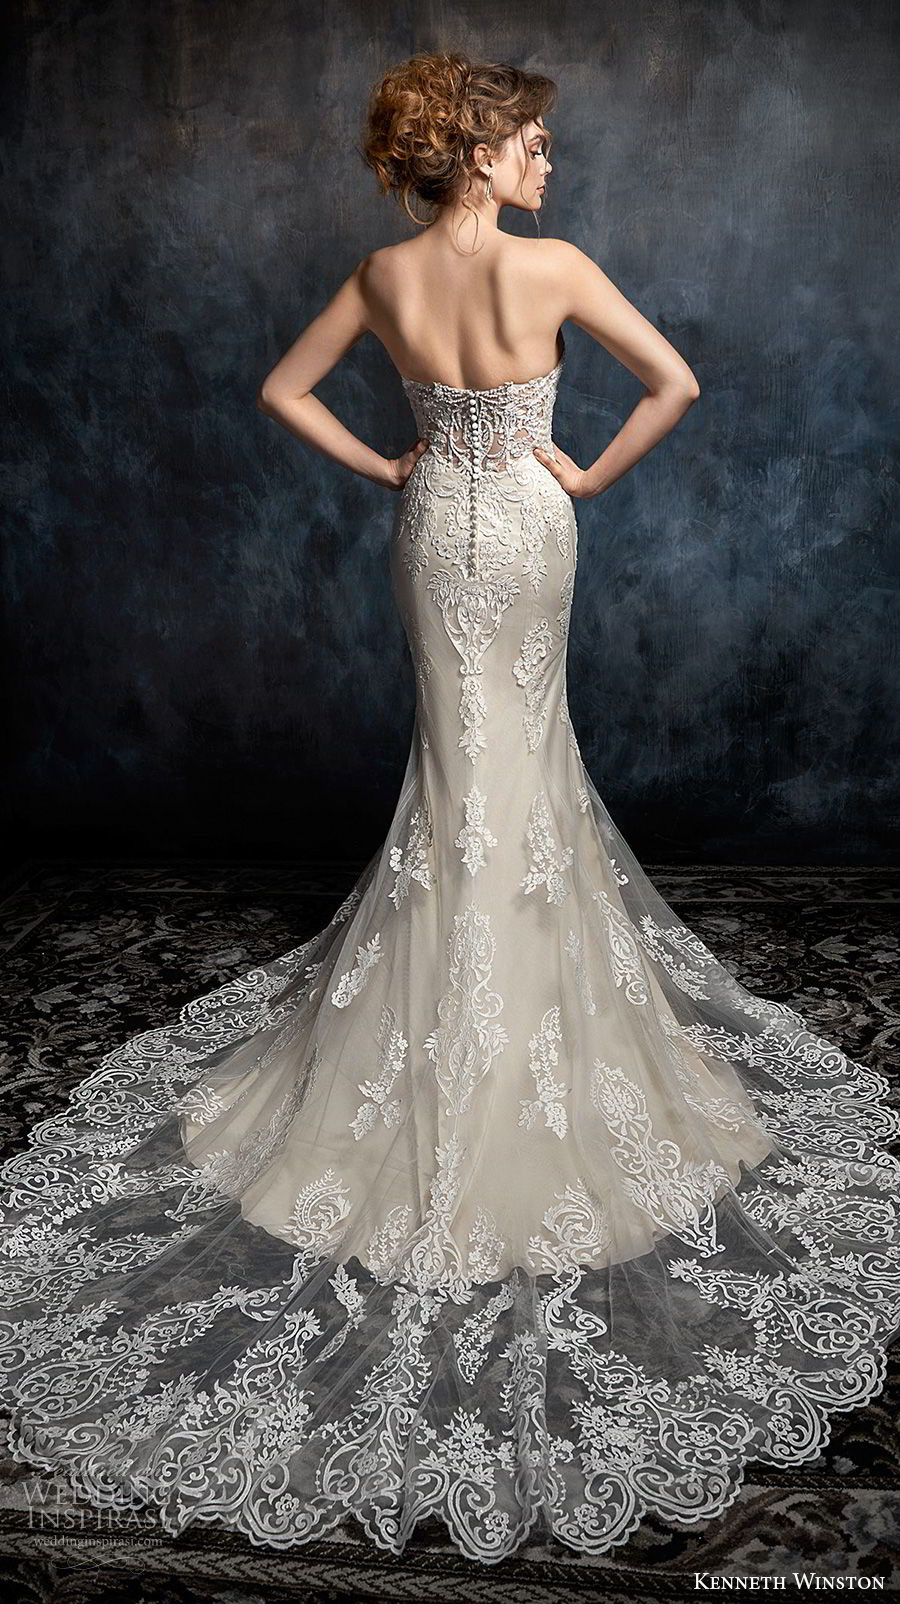 kenneth winston fall 2017 bridal strapless sweetheart neckline heavily embellished bodice elegant sheath fit and flare wedding dress chapel train (28) bv